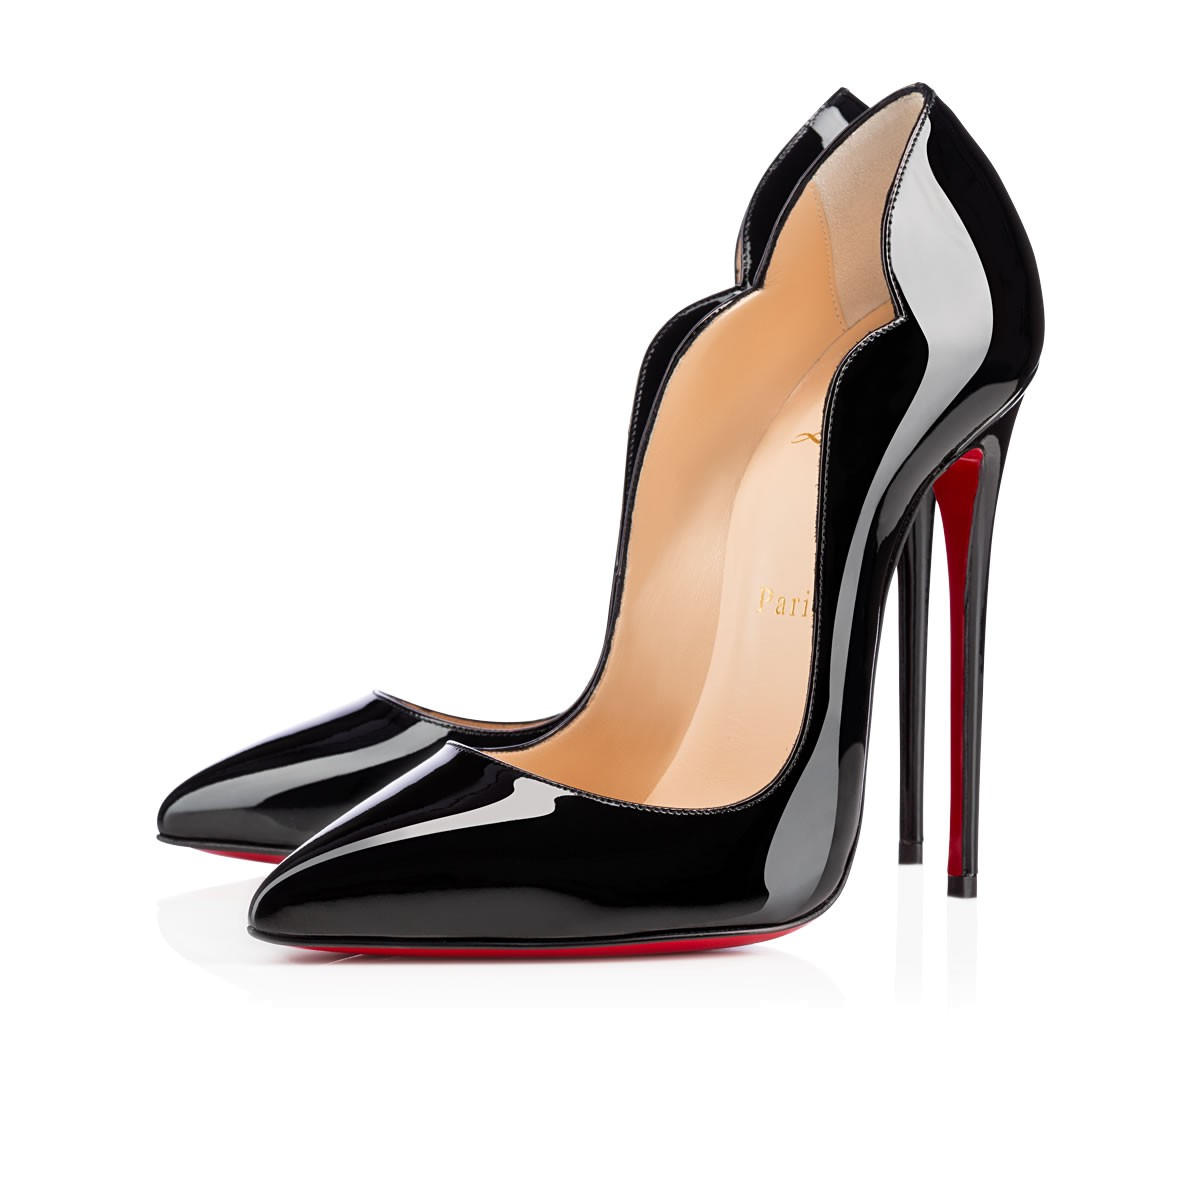 719760d2cbce CHRISTIAN LOUBOUTIN HOT CHICK PATENT LEATHER - Reed Fashion Blog